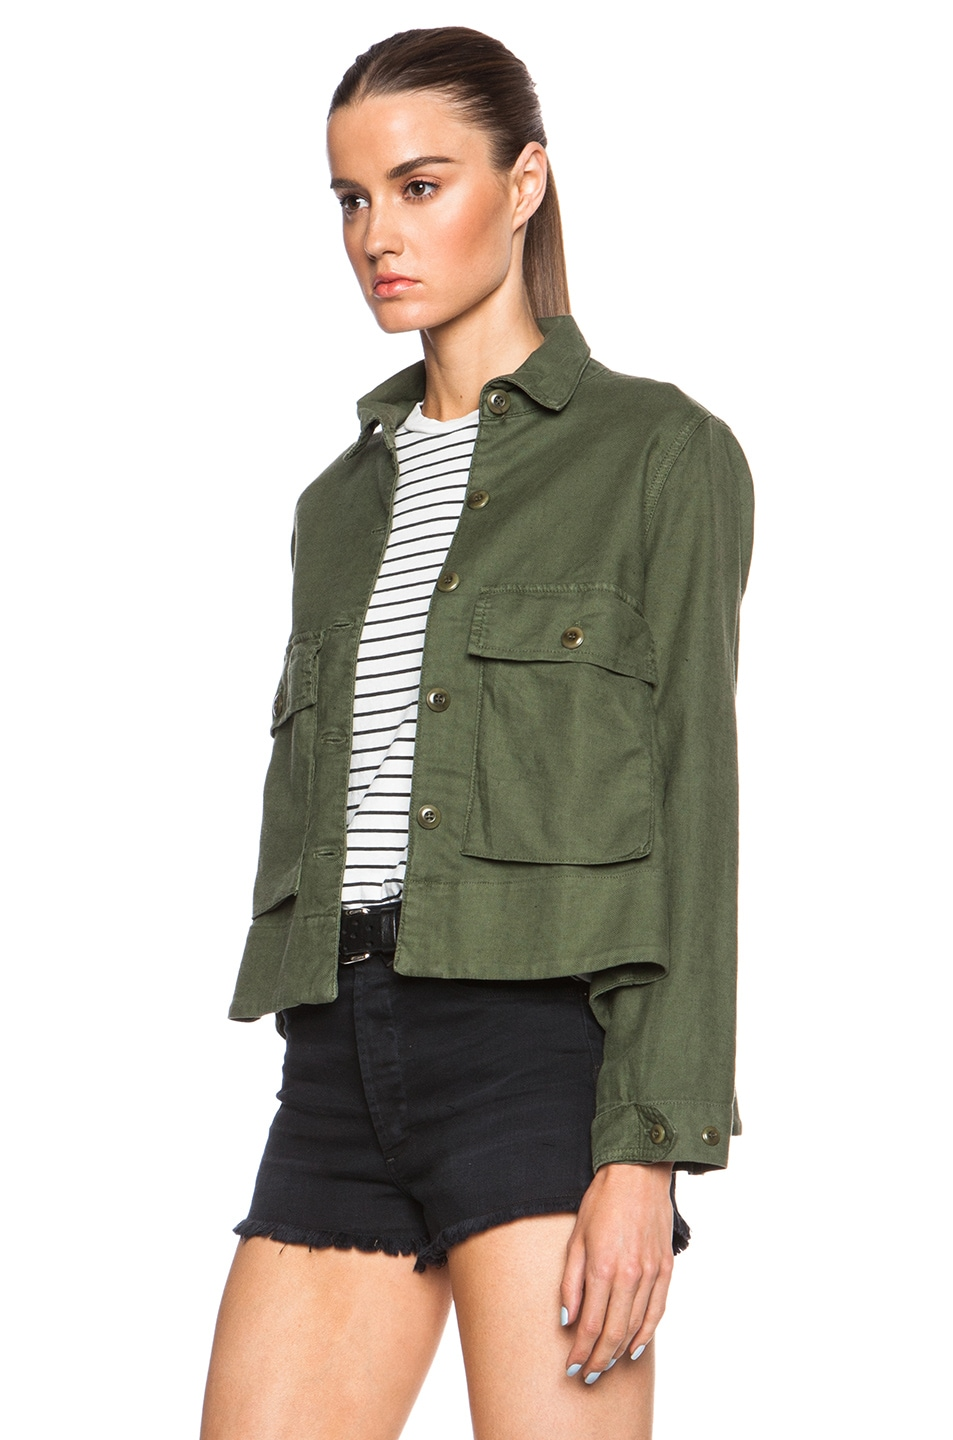 The Great Swingy Army Jacket Beat Up Army 50%OFF